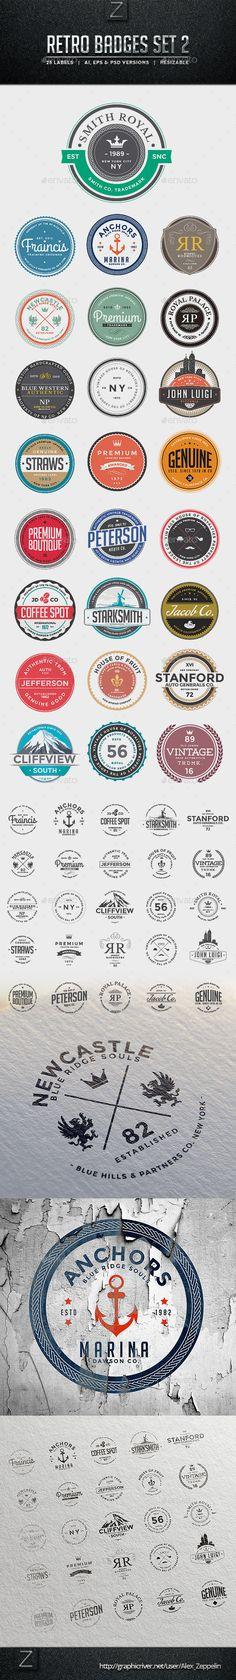 Retro Badges Set | #retrobadges #retro #badges |Download: http://graphicriver.net/item/retro-badges-set-2/10070679?ref=ksioks